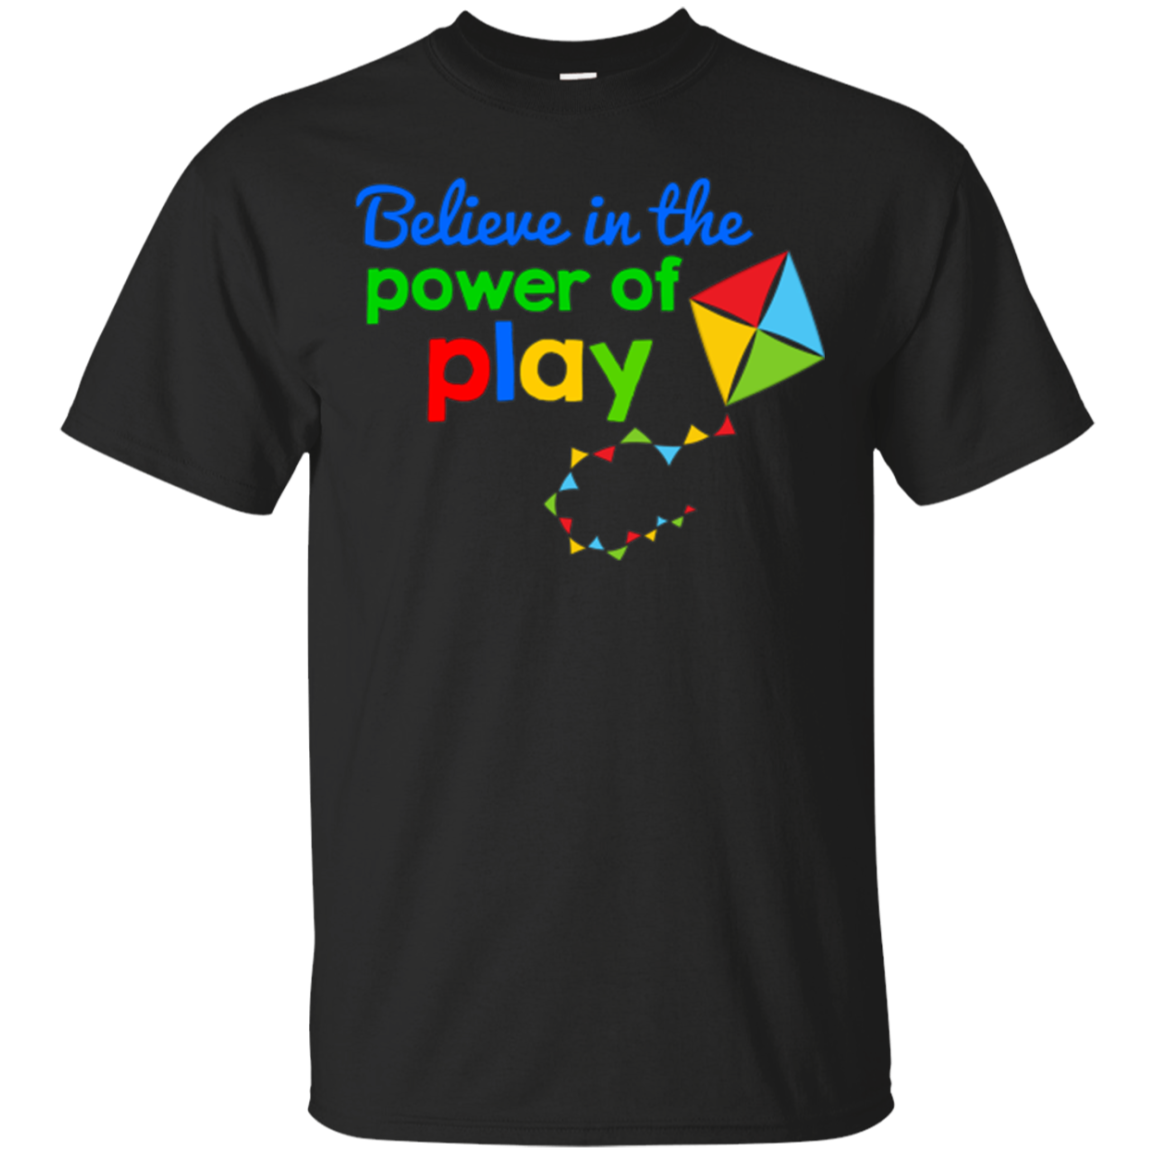 Believe in the Power of Play T-Shirt Play is Learning